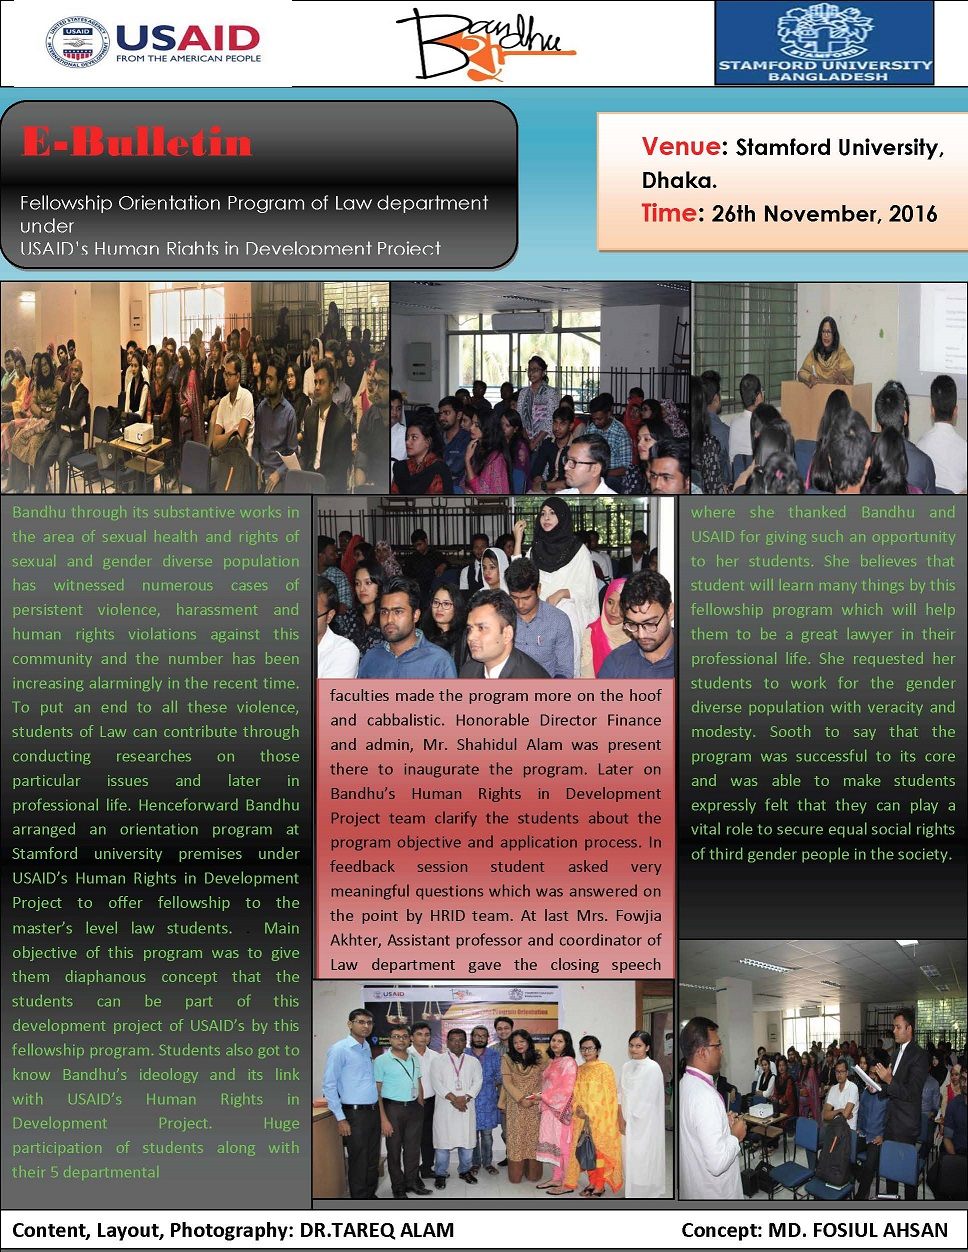 e_bulletin_fellowship-orientation_sub